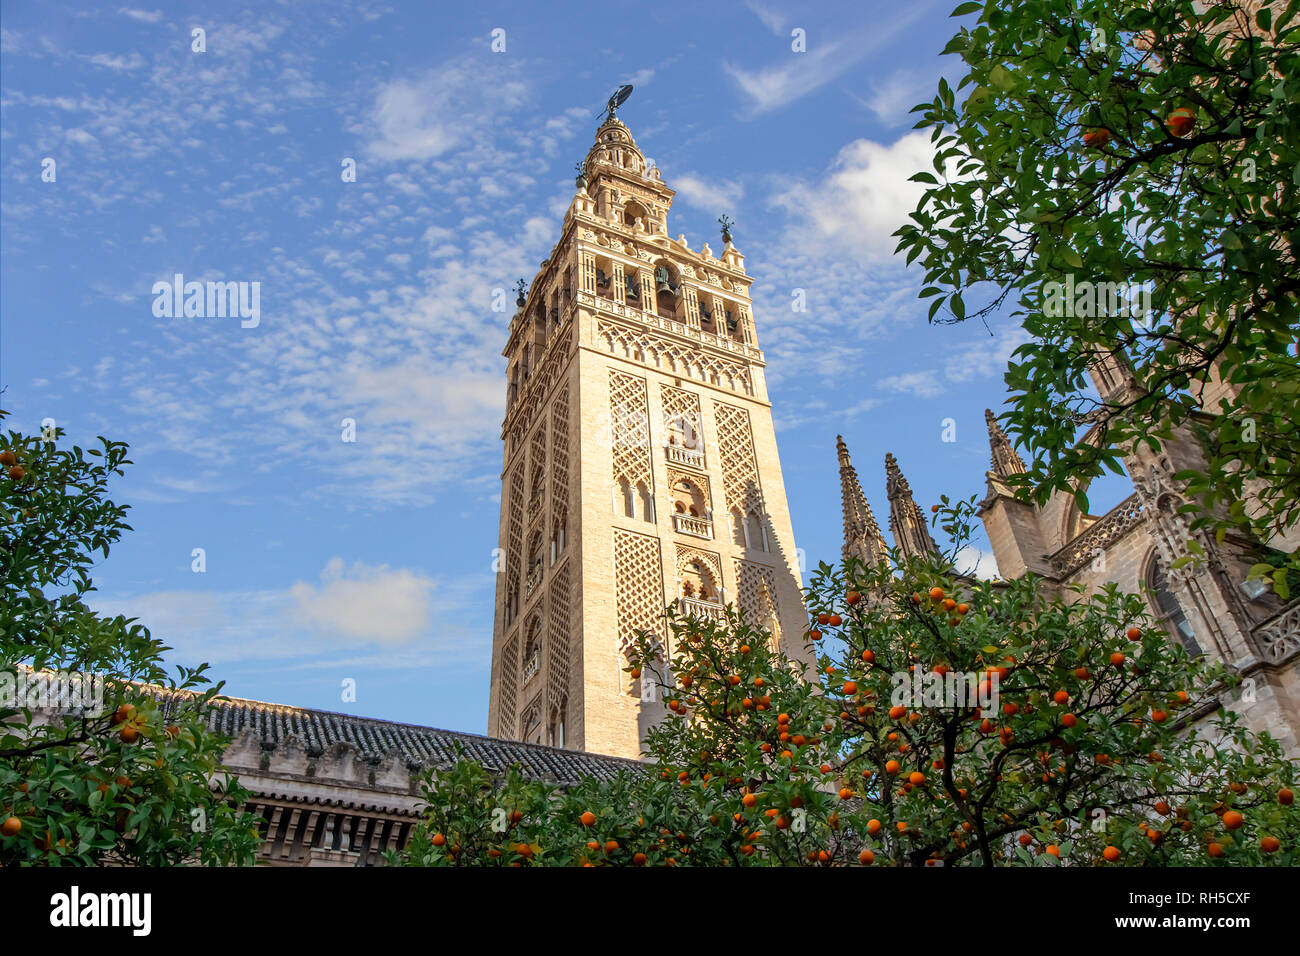 View of Giralda tower of Seville Cathedral of Saint Mary of the See (Seville Cathedral)  with oranges trees in the foreground - Stock Image